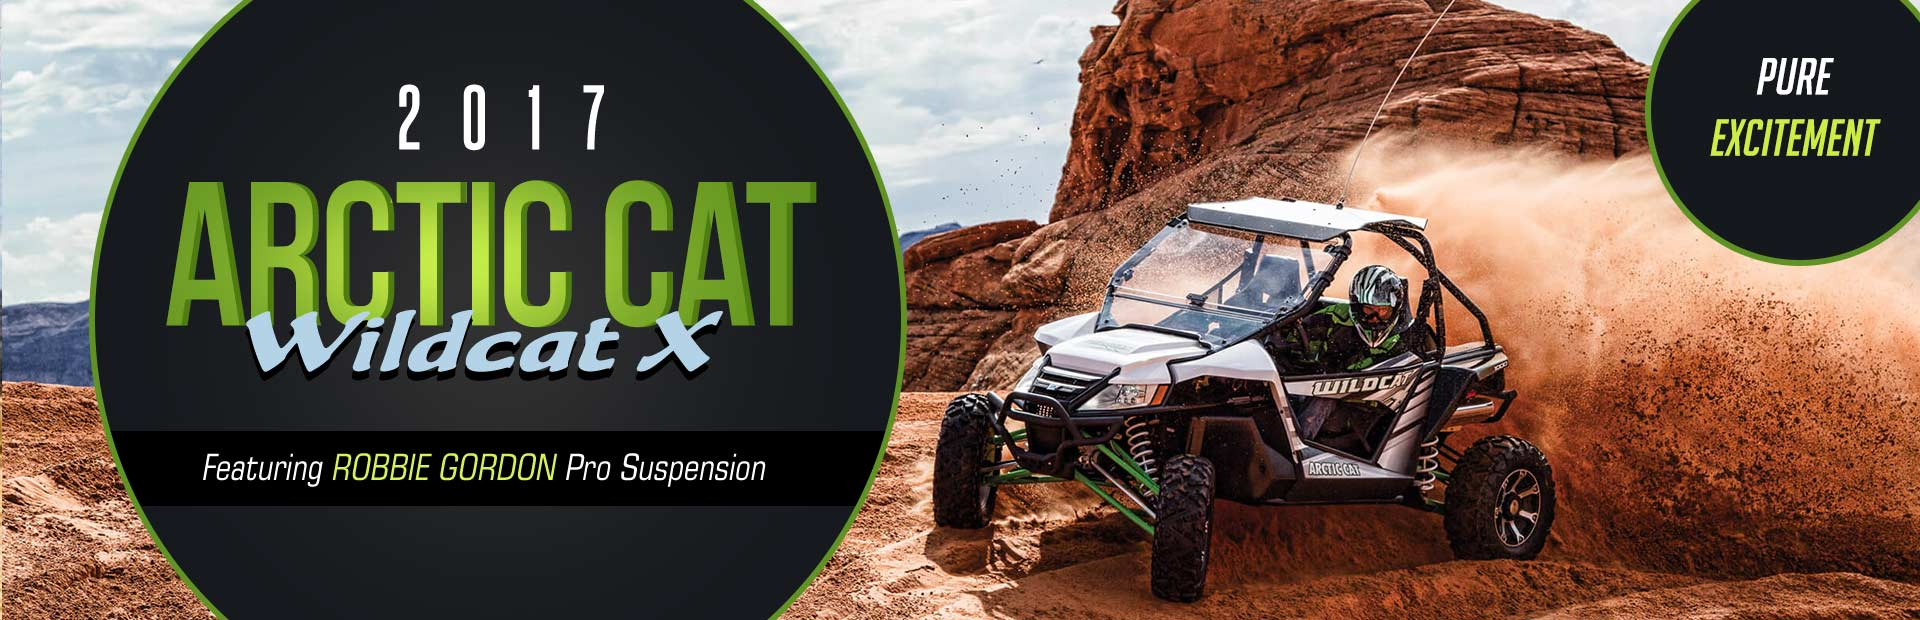 2017 Arctic Cat Wildcat X: Click here to view the models.